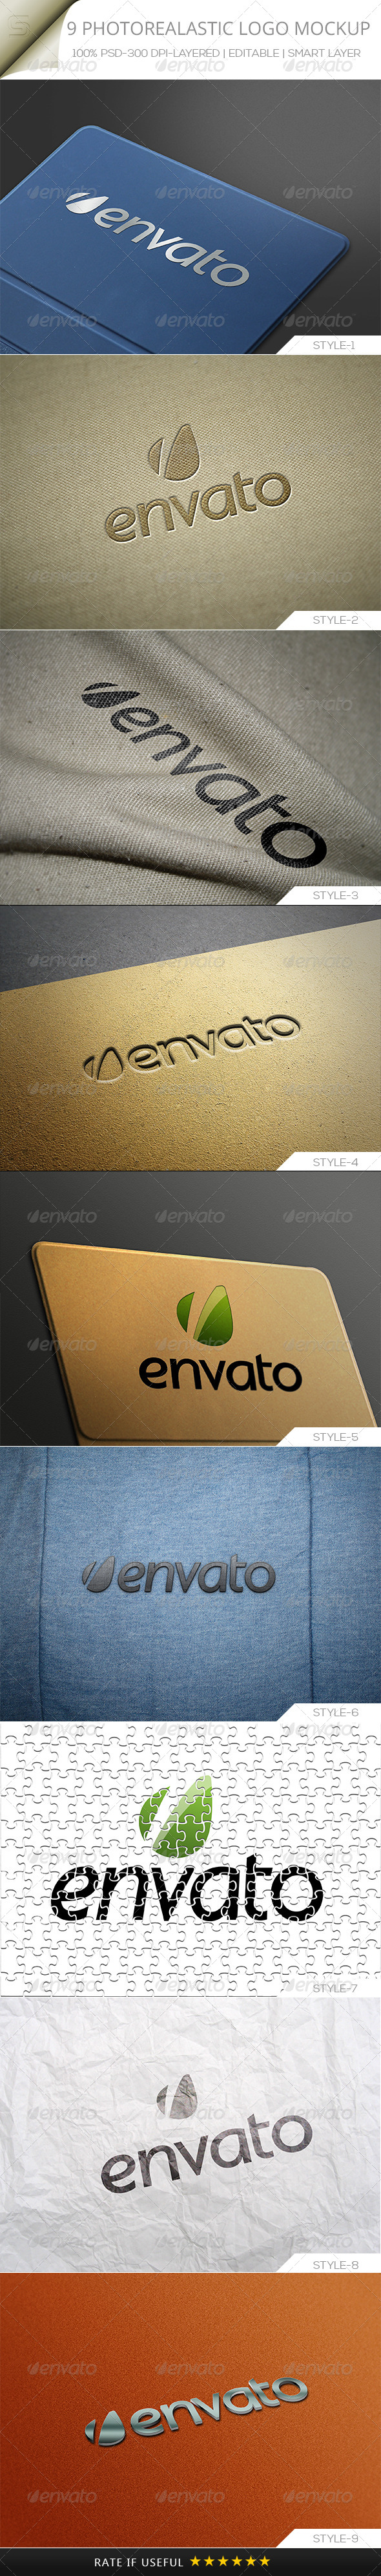 GraphicRiver Photorealastic Logo Mock-up V-01 5360344